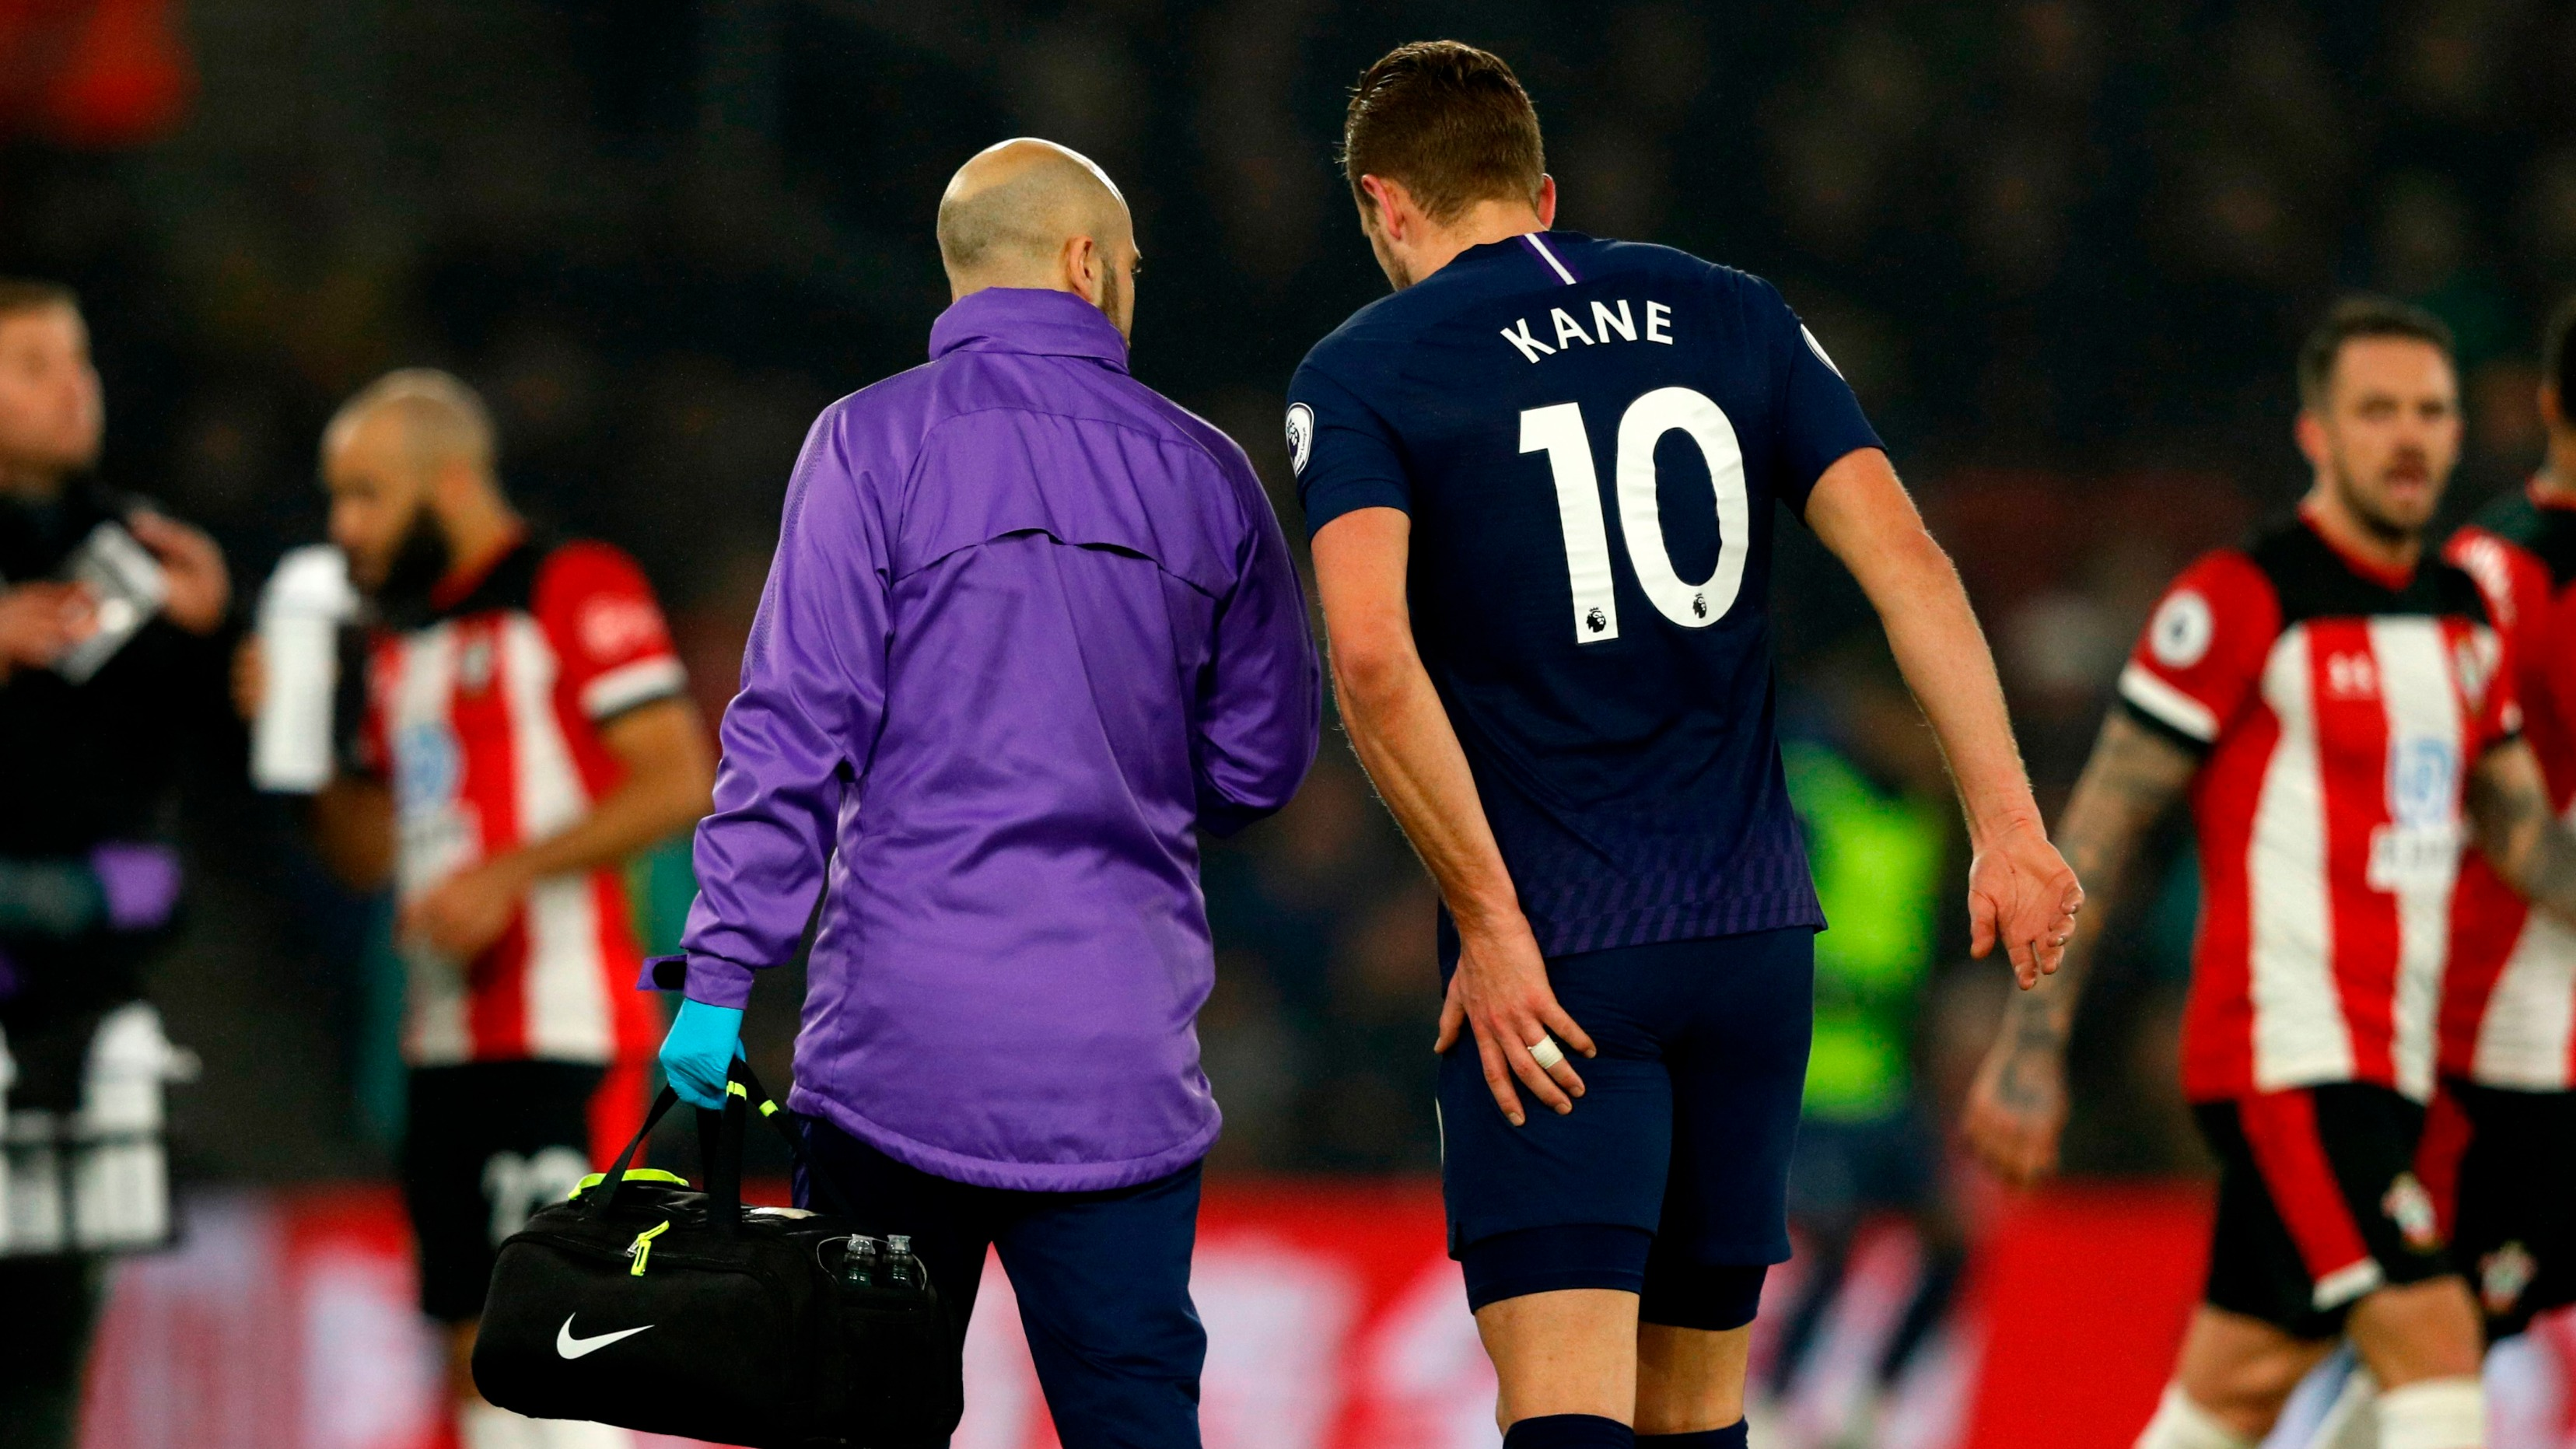 'Kane will be a miracle man if he's back in April' – England legend Owen fears for injured Spurs striker